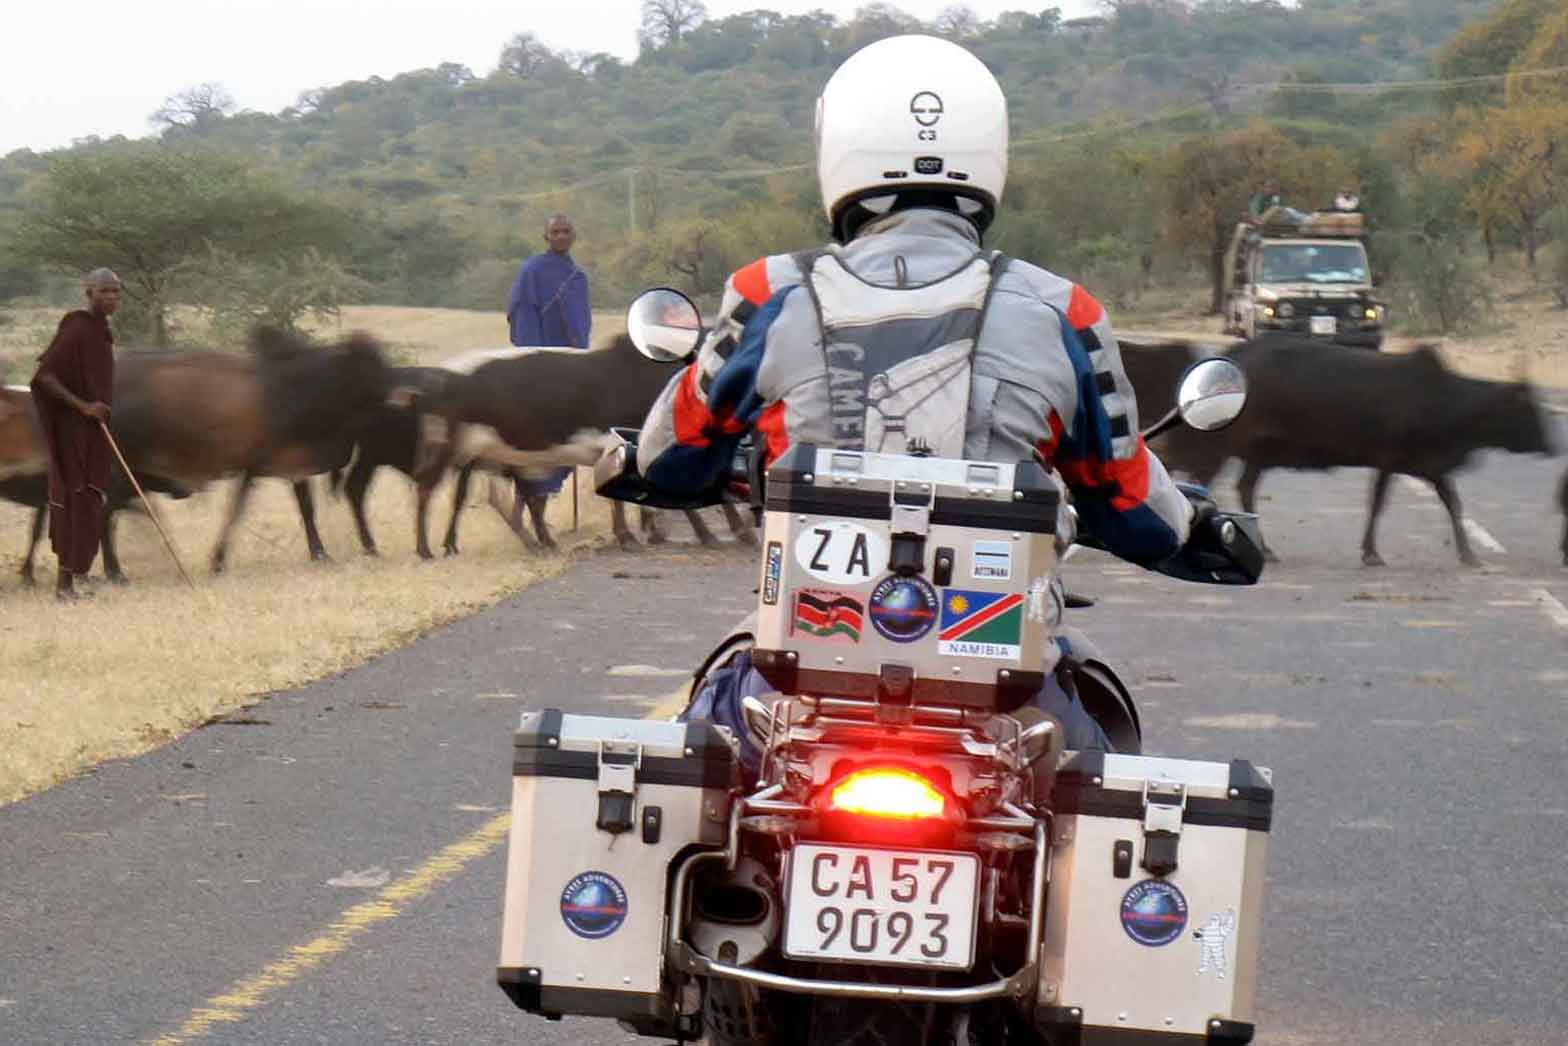 Traffic jam in Kenya